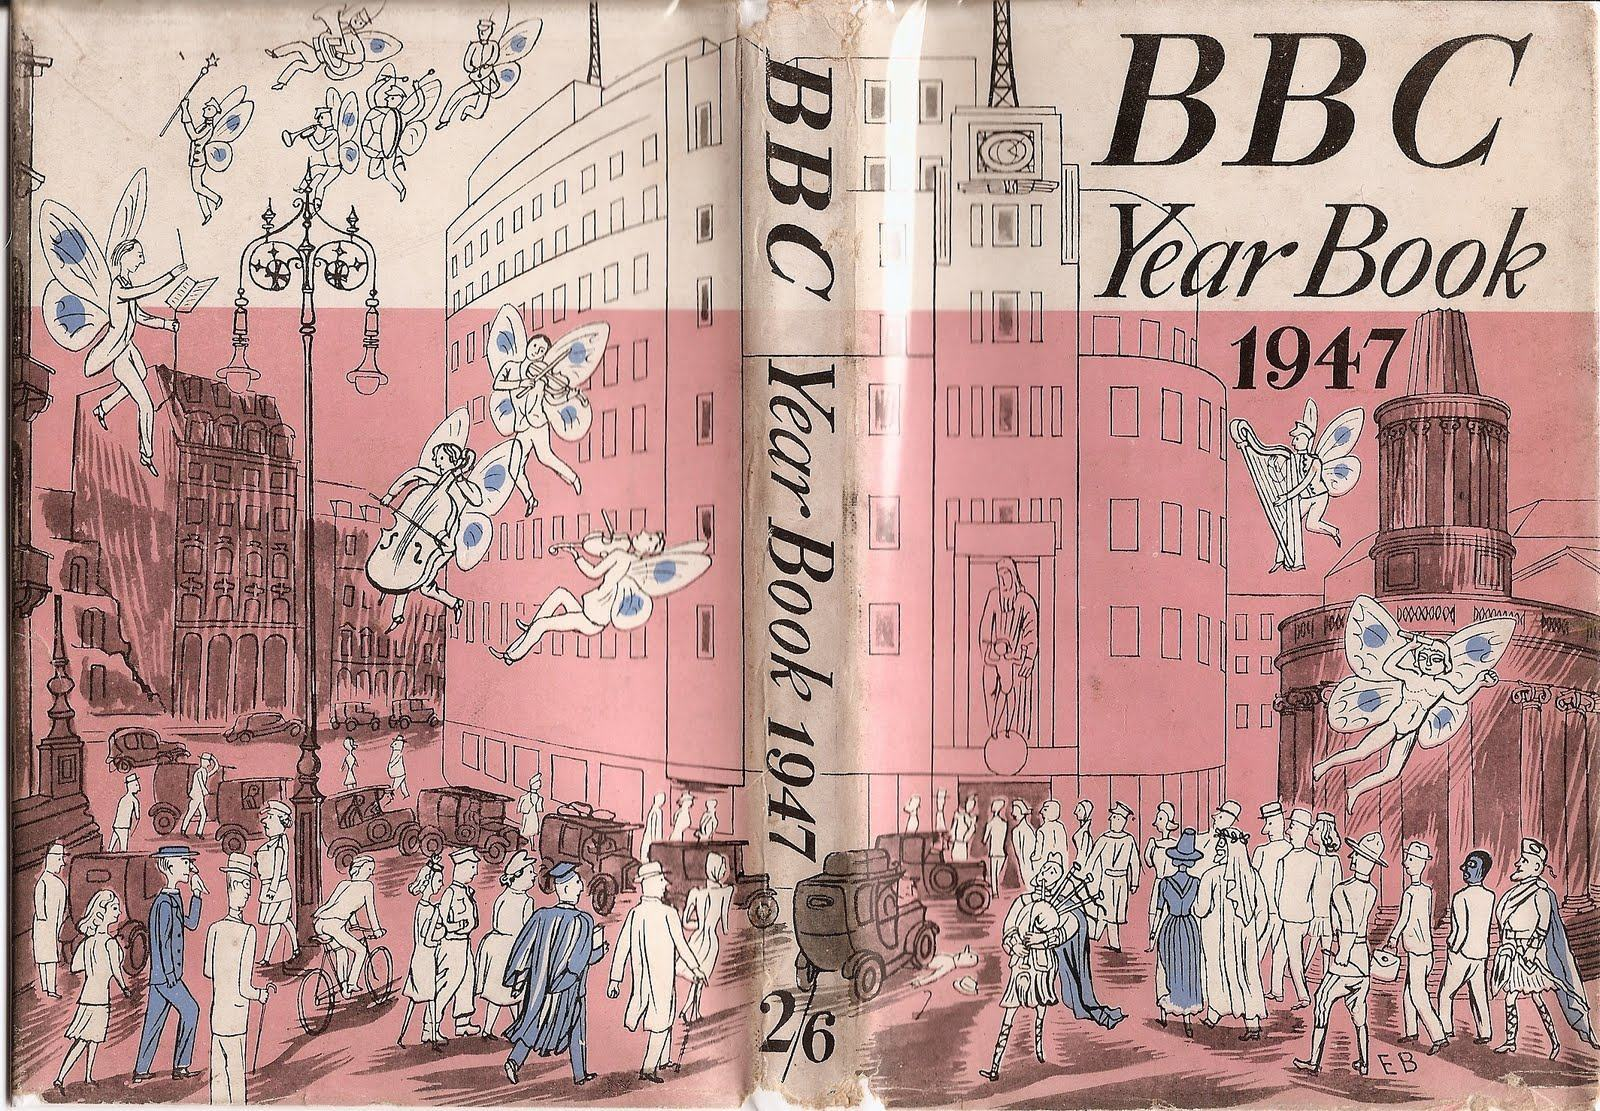 BBC Year Book 1947 designed by Edward Bawden